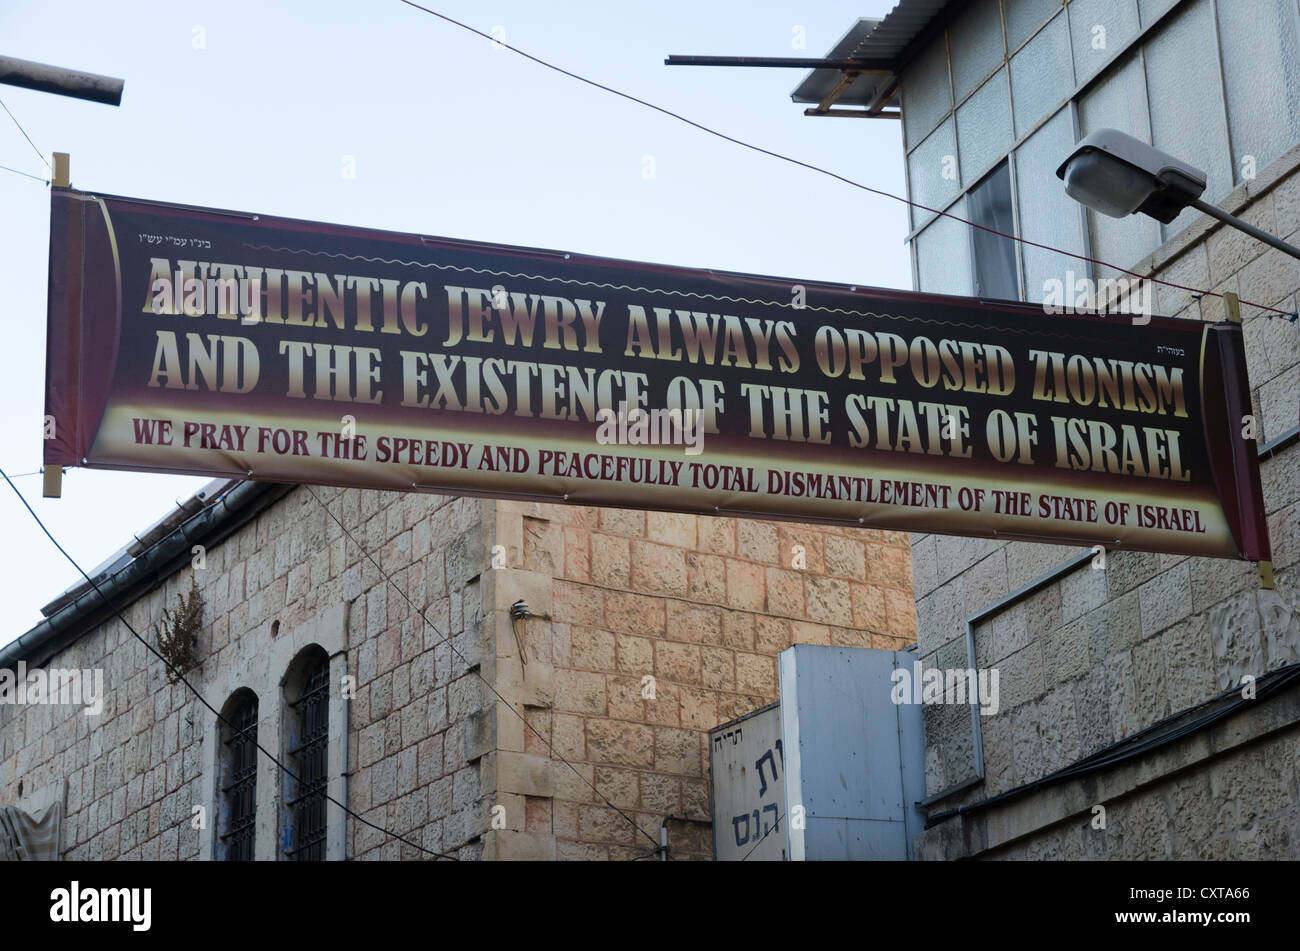 Anti sionist banner in the streets of Mea Shearim Jewish orthodox neighborhood. Jerusalem. Israel. - Stock Image